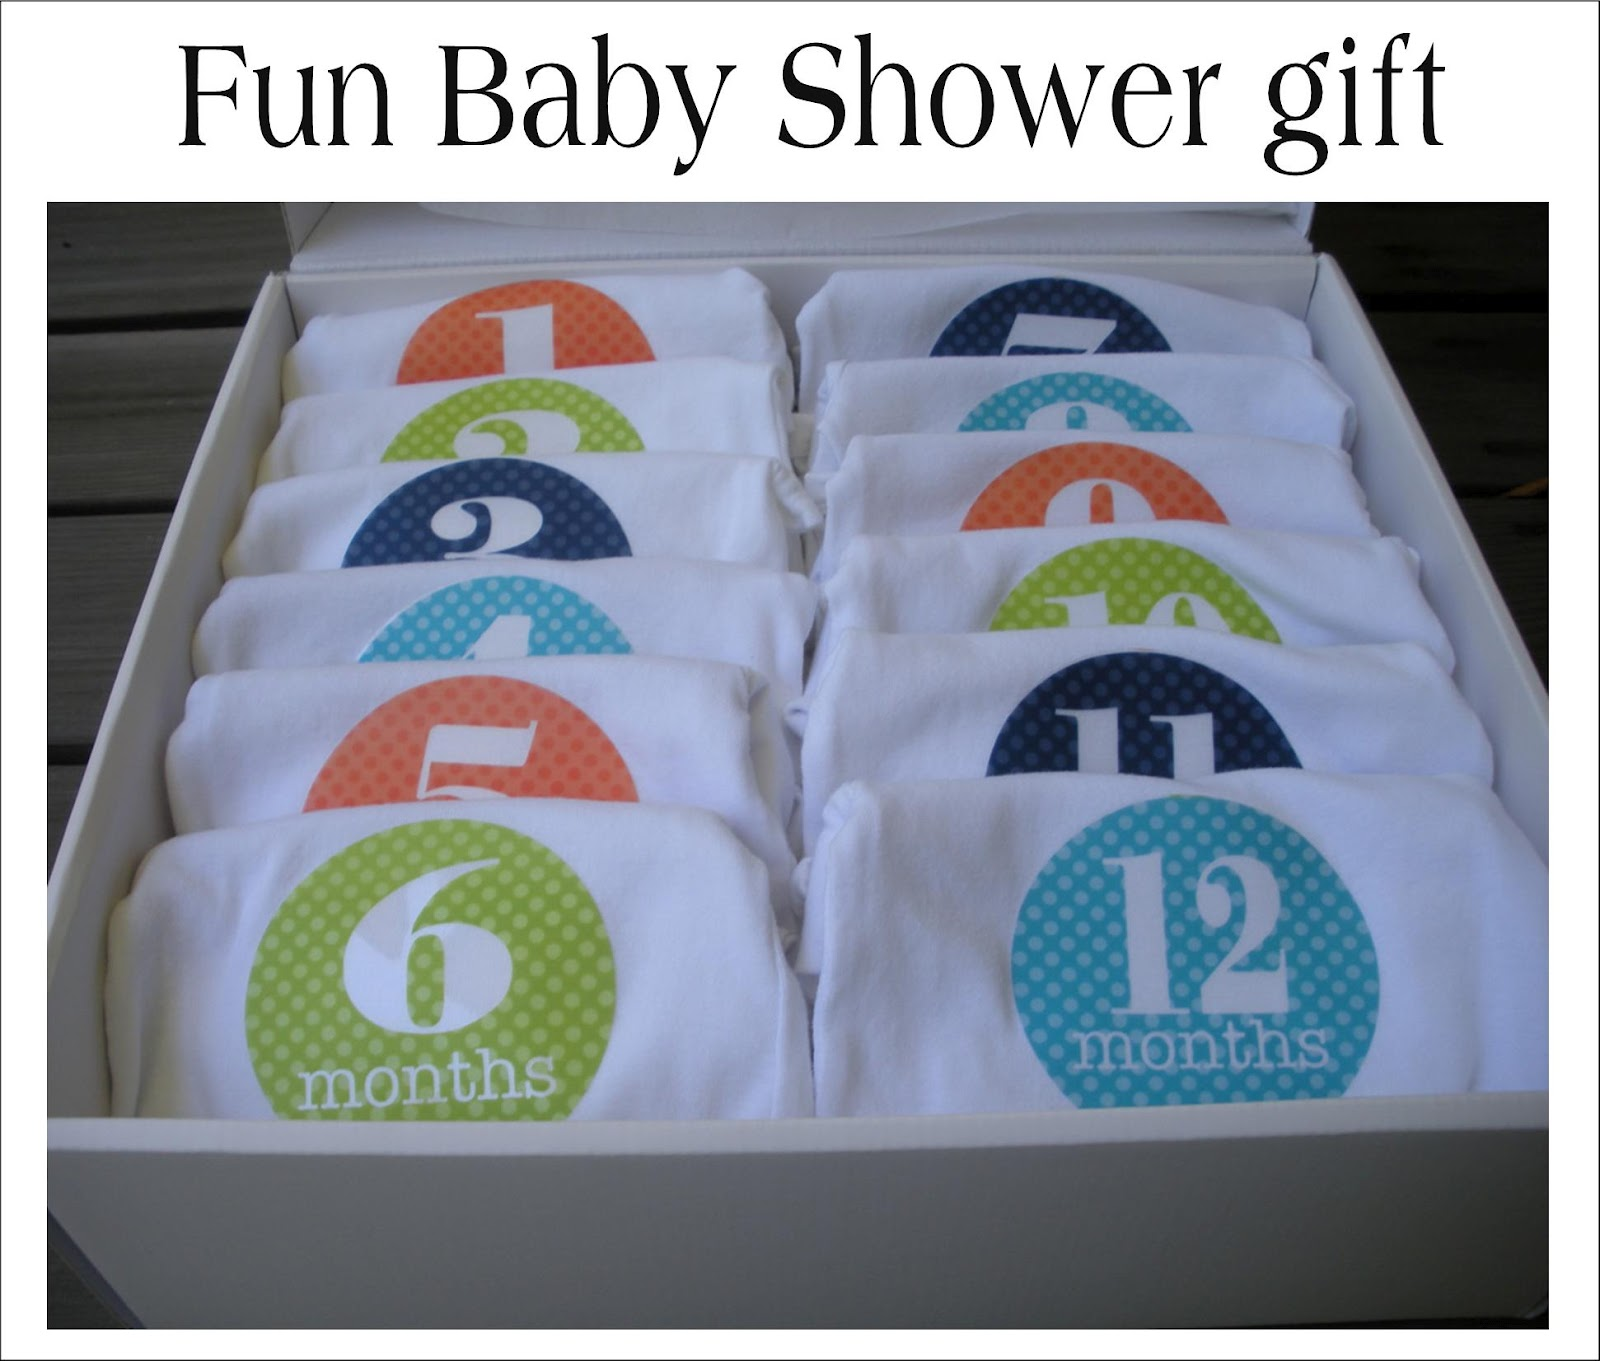 It's Written on the Wall: Cute Ideas for Your Baby Shower